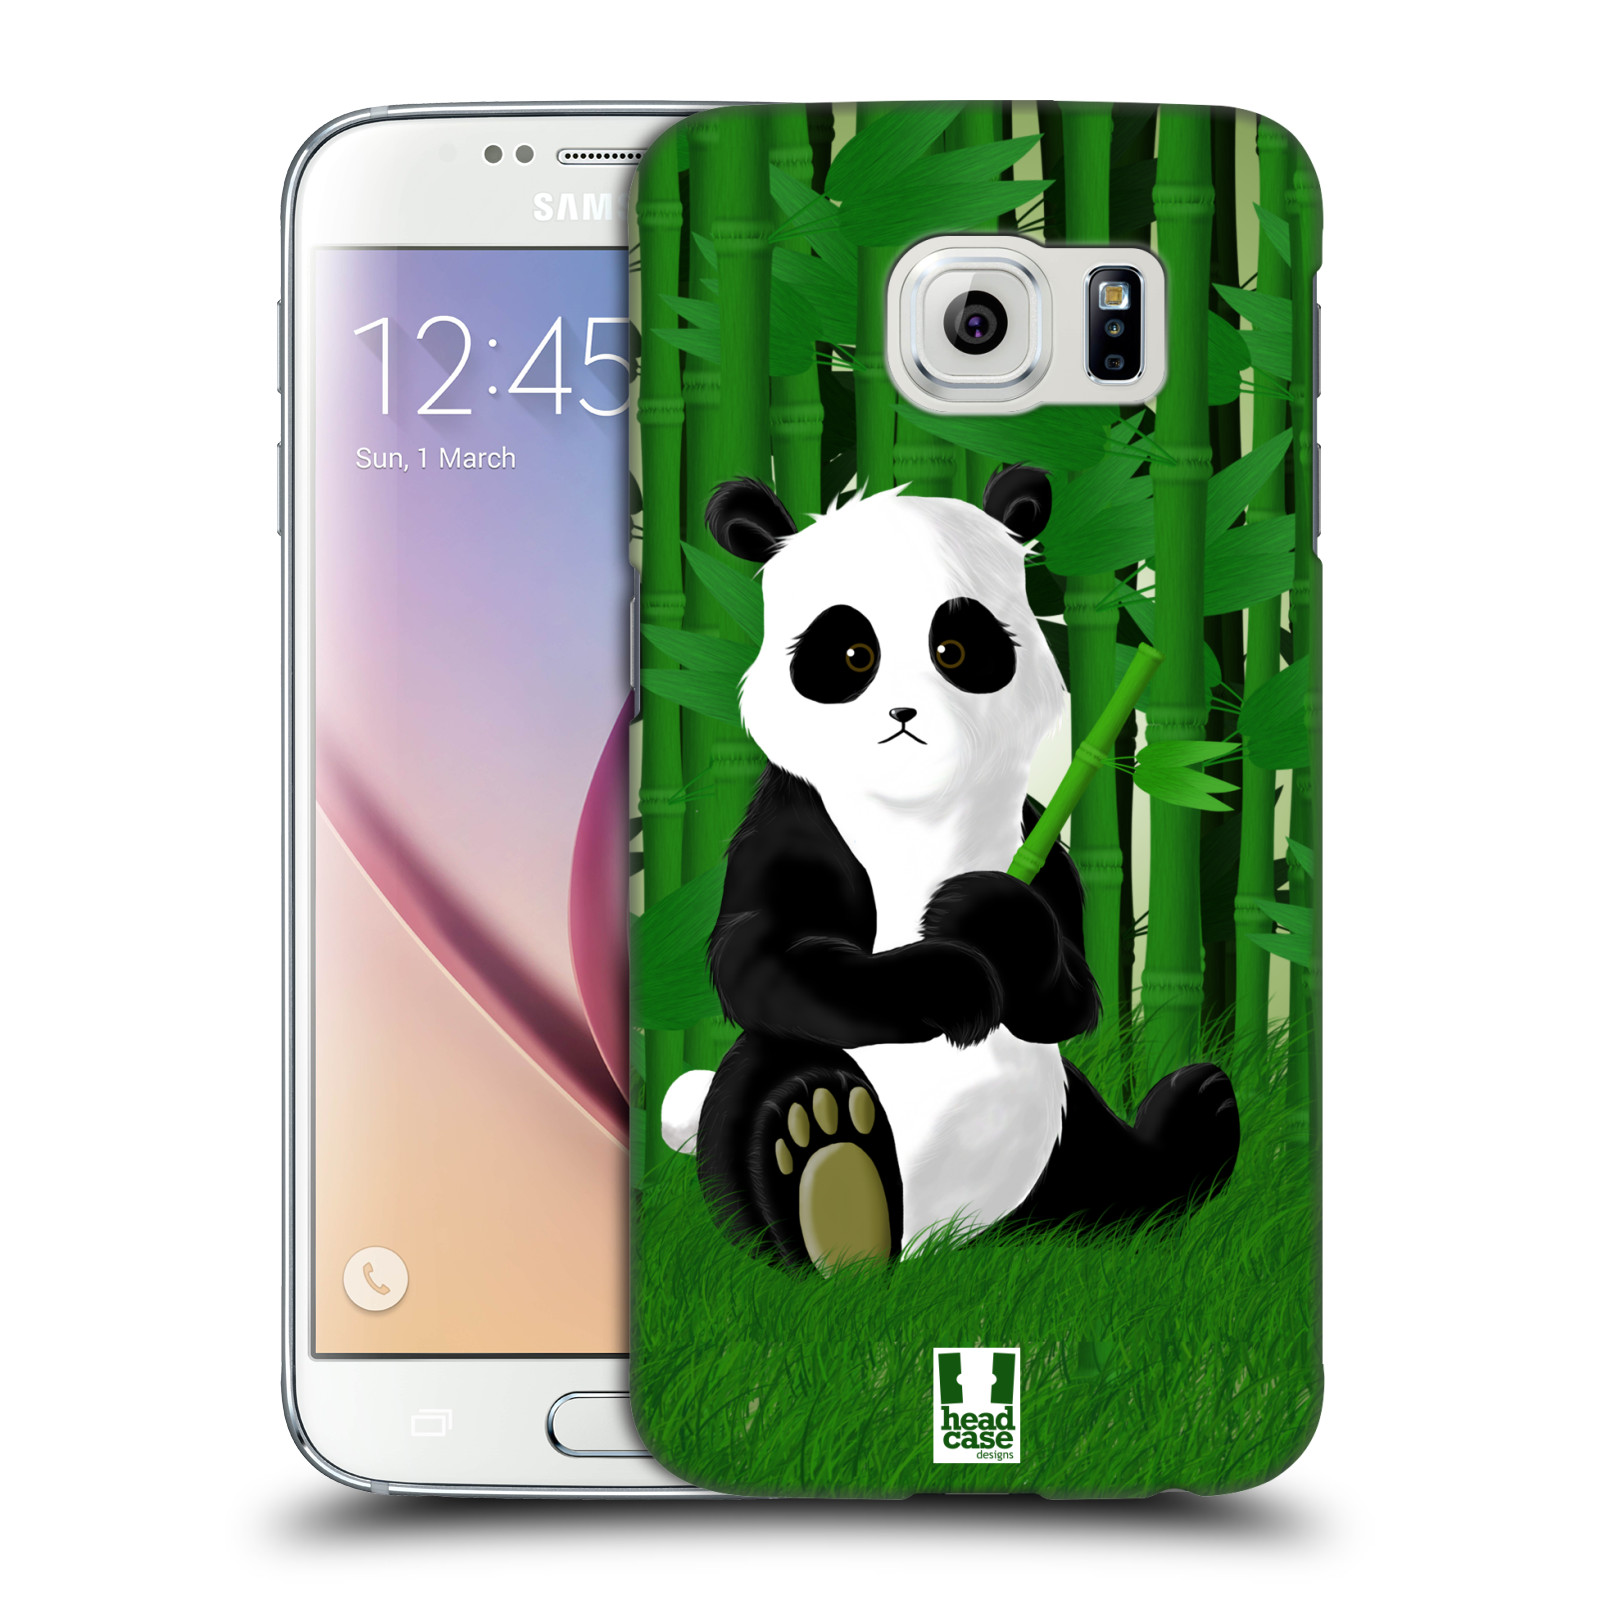 Head case designs baby panda hard back case for samsung for Cell phone cover design ideas